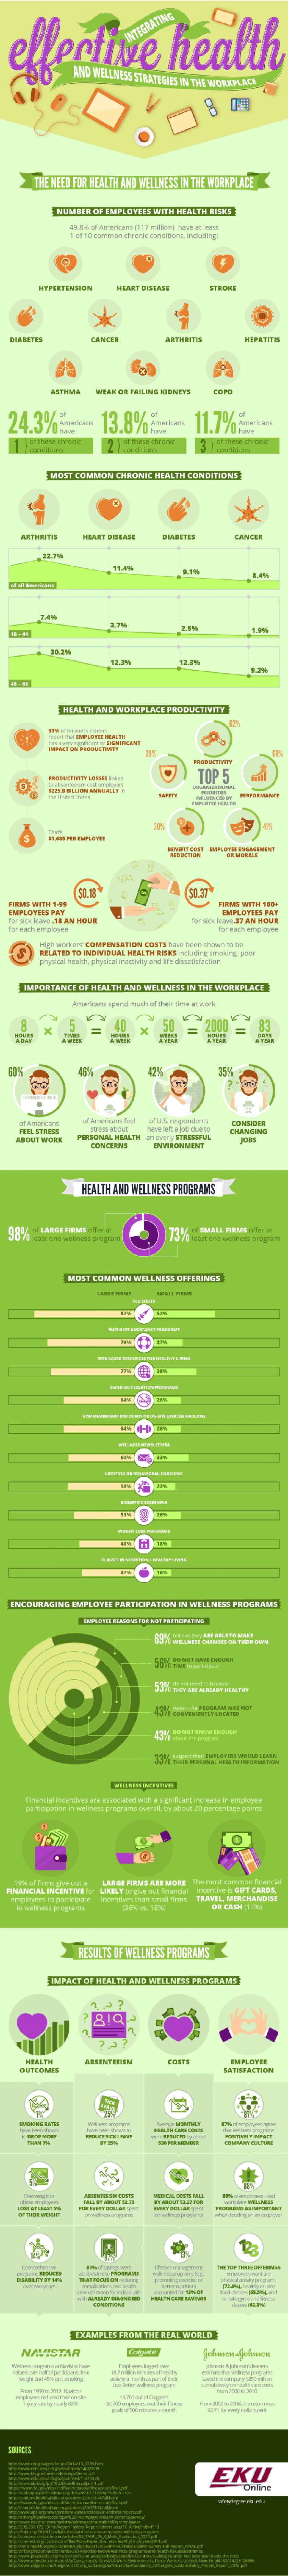 Health and Wellness at Work,infographic